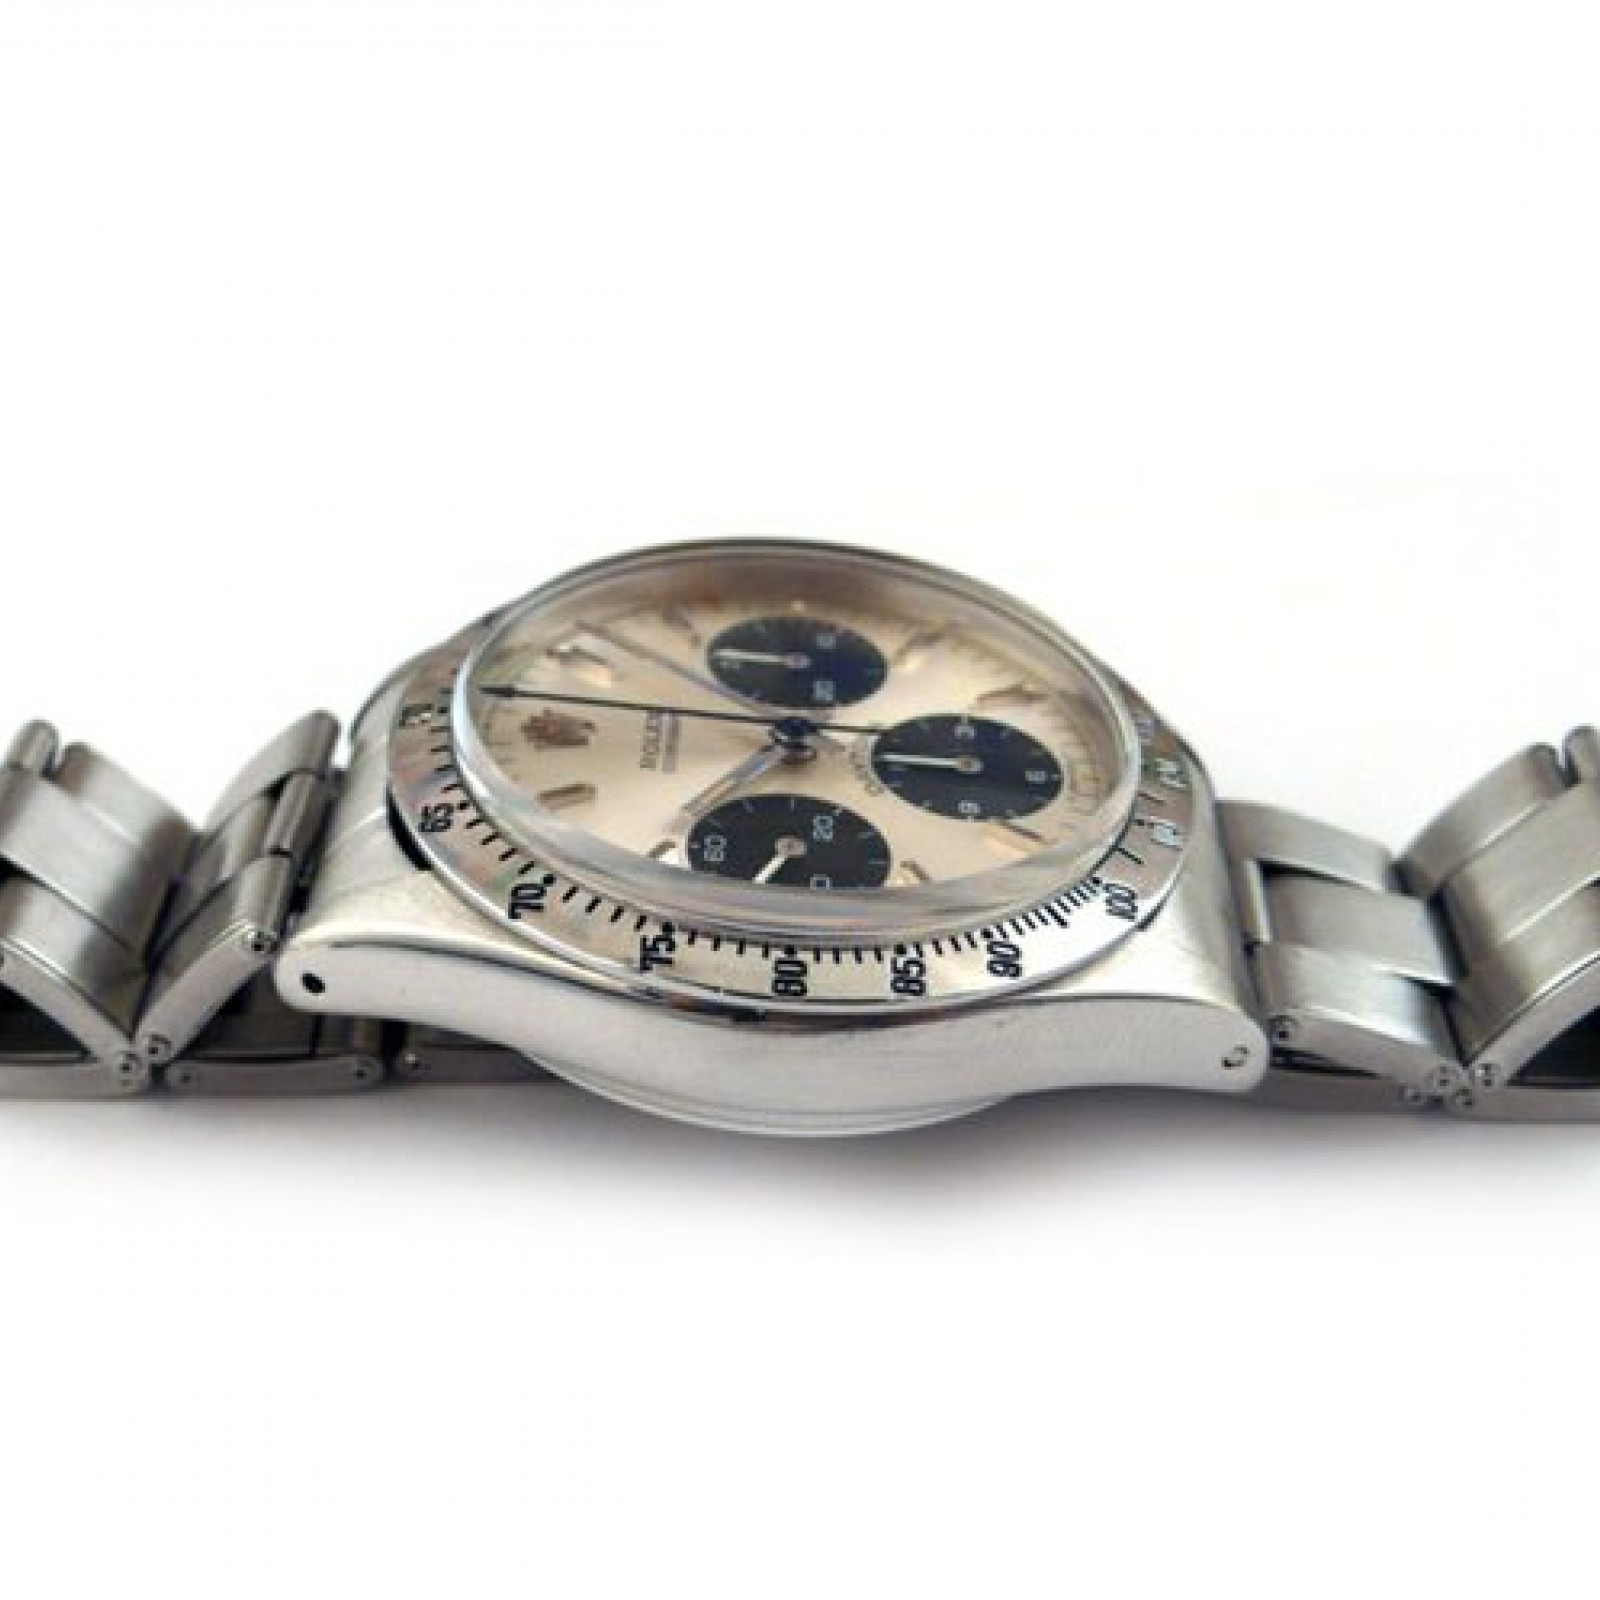 Vintage Rolex Daytona 6262 Steel with Silver Dial